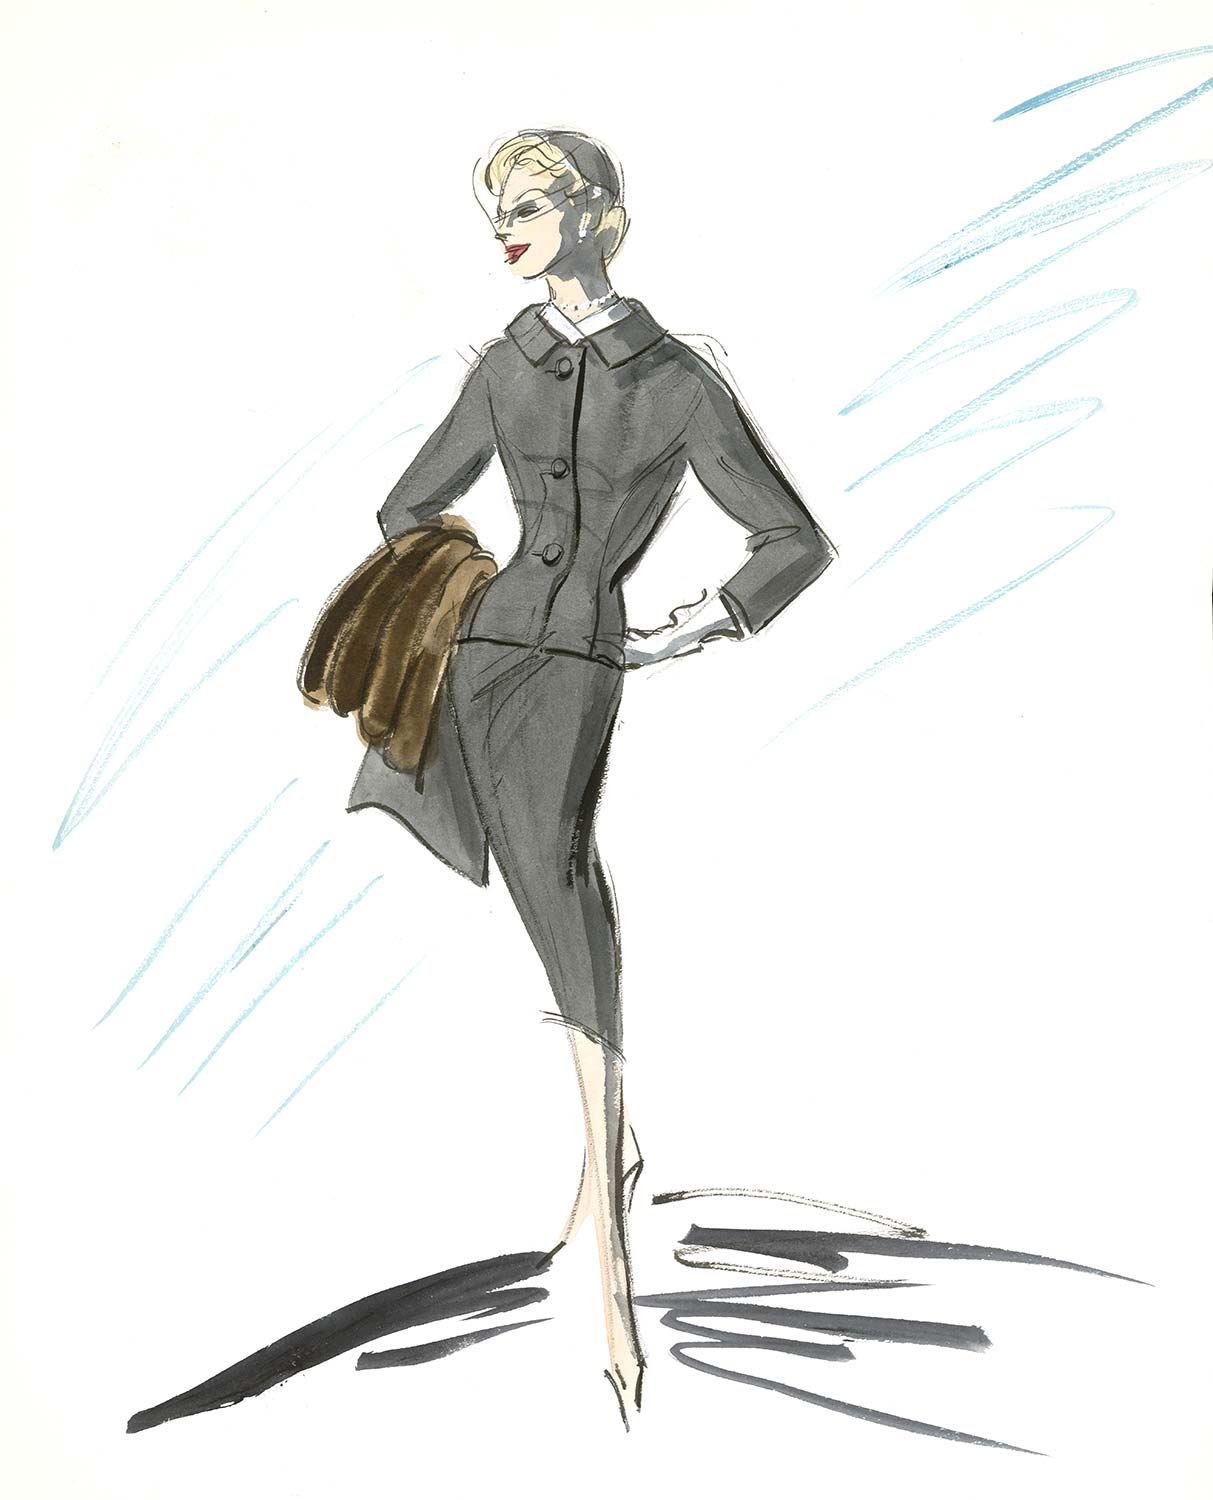 Costume design sketch.